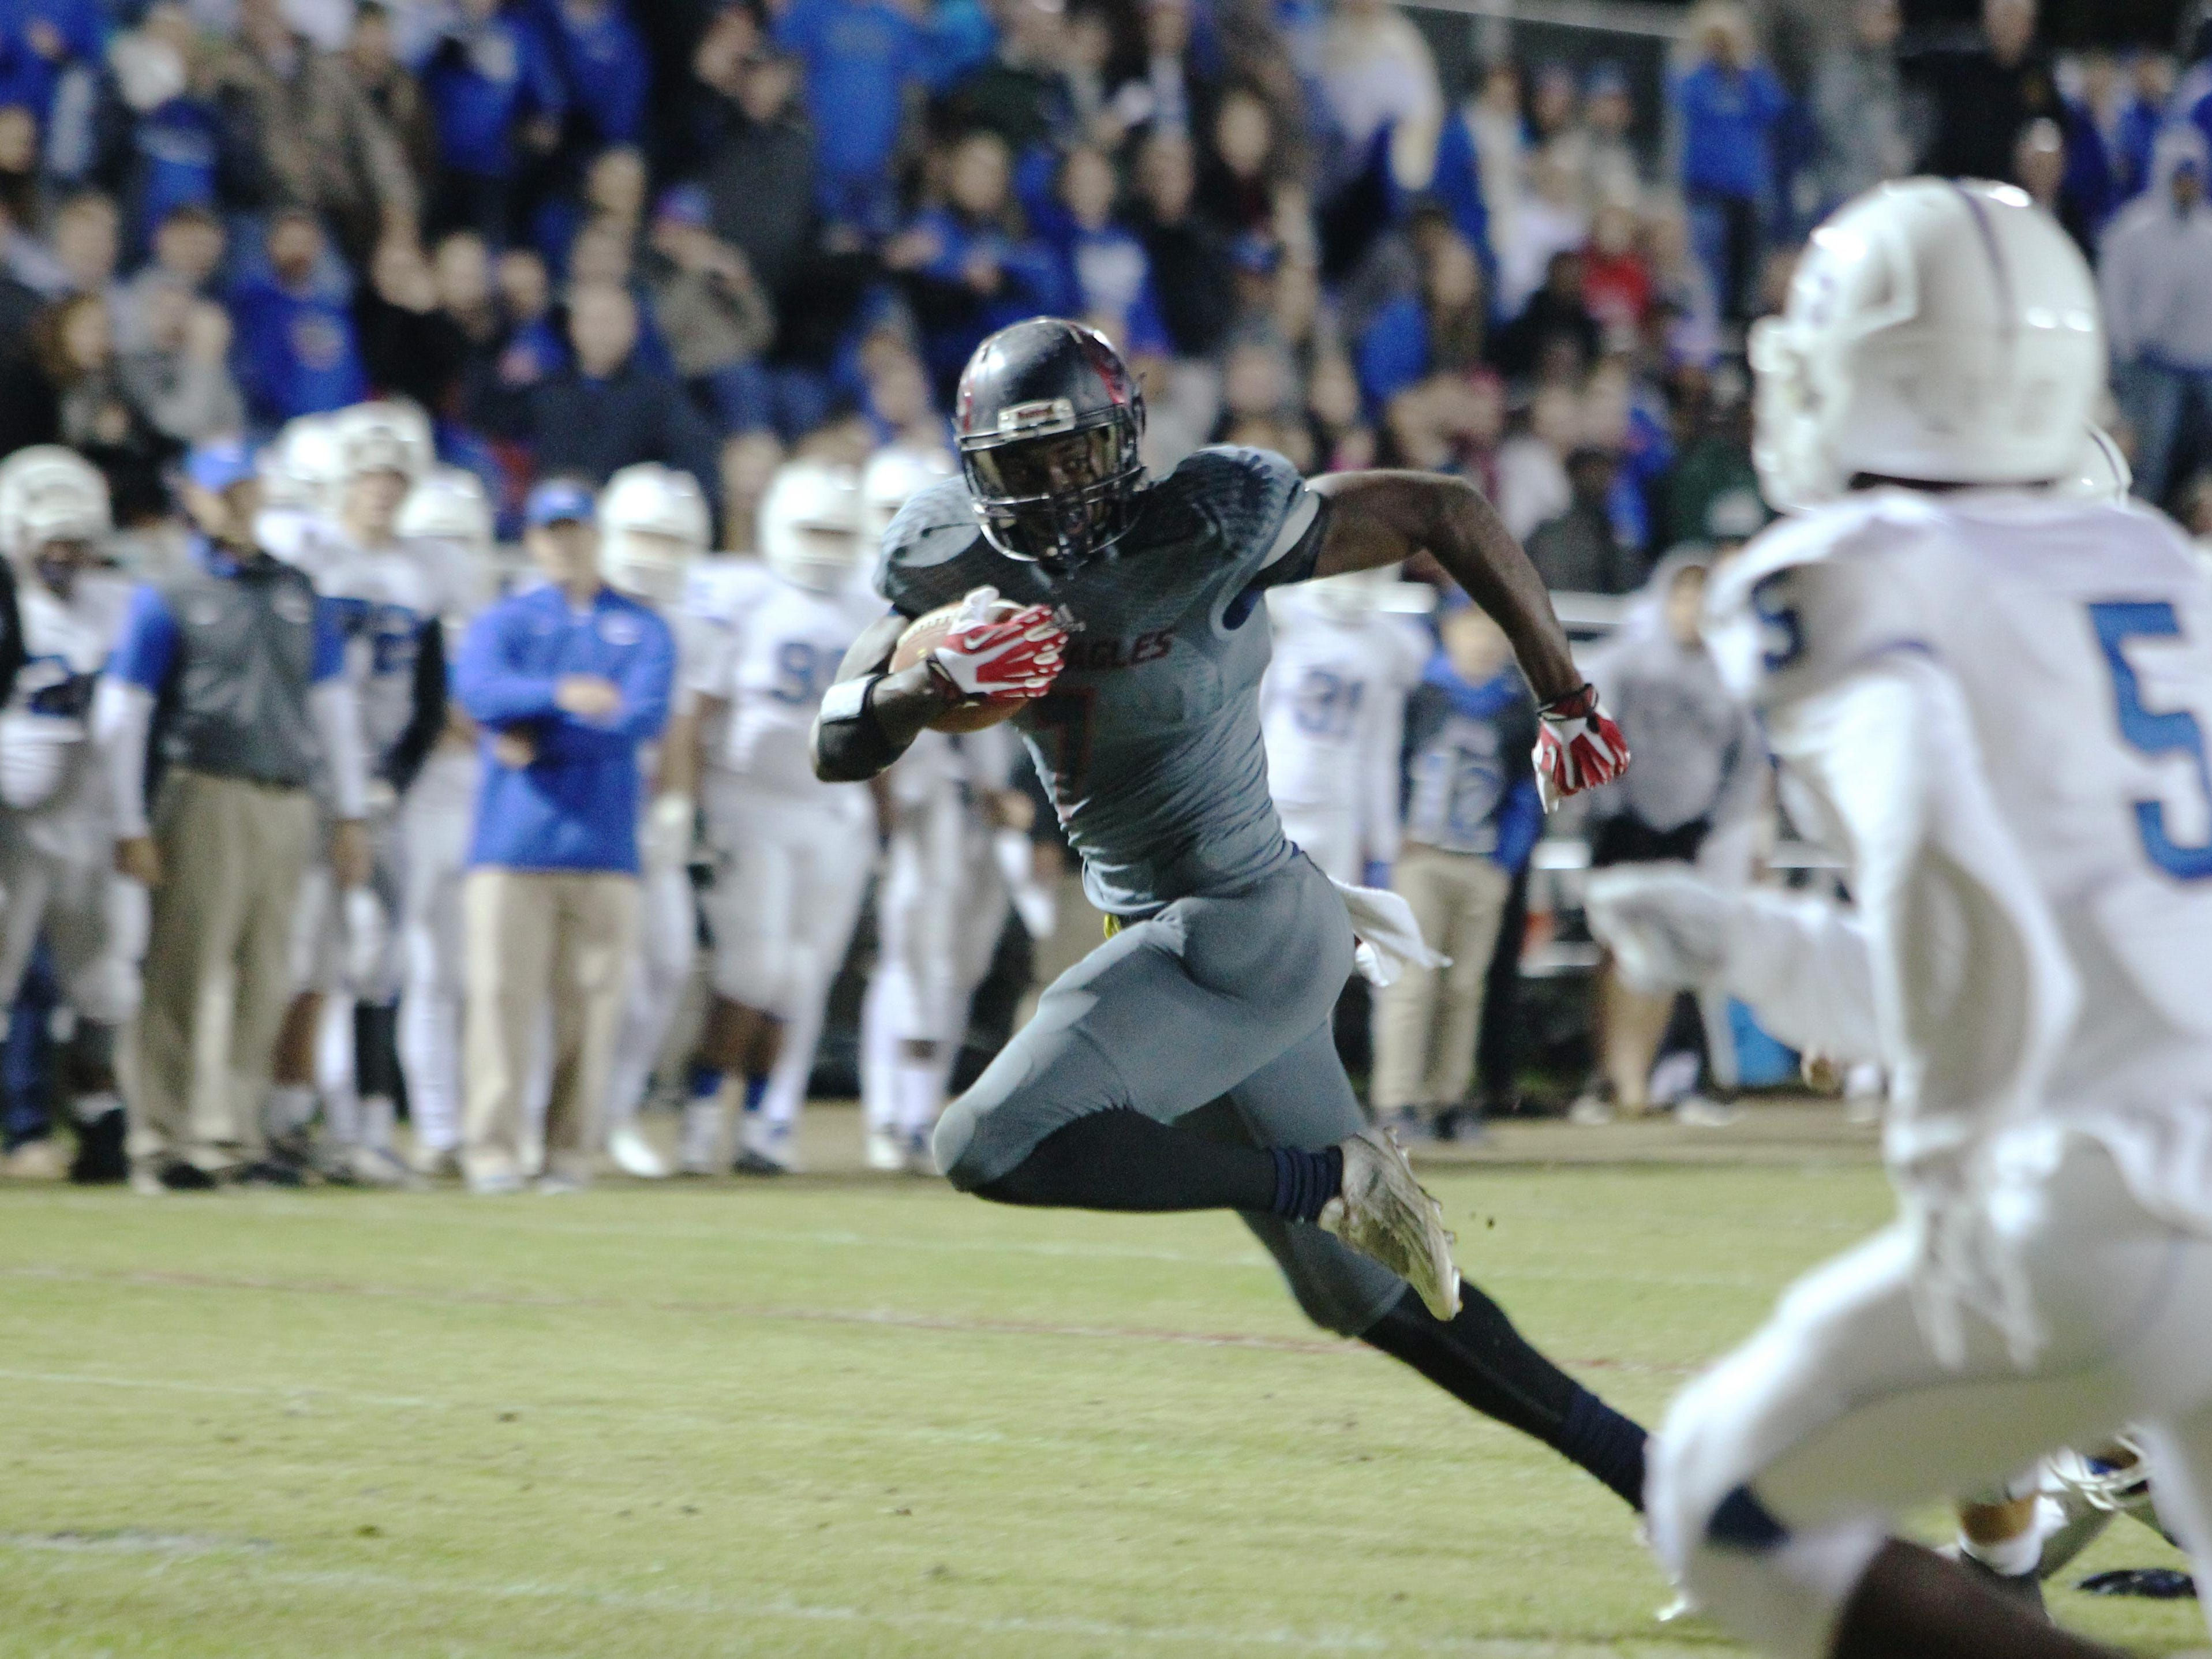 Wakulla senior Keith Gavin scored on a 15-yard touchdown in the second quarter, then hauled in a 46-yard touchdown in the third quarter of a Class 5A state semifinal win over Clay.